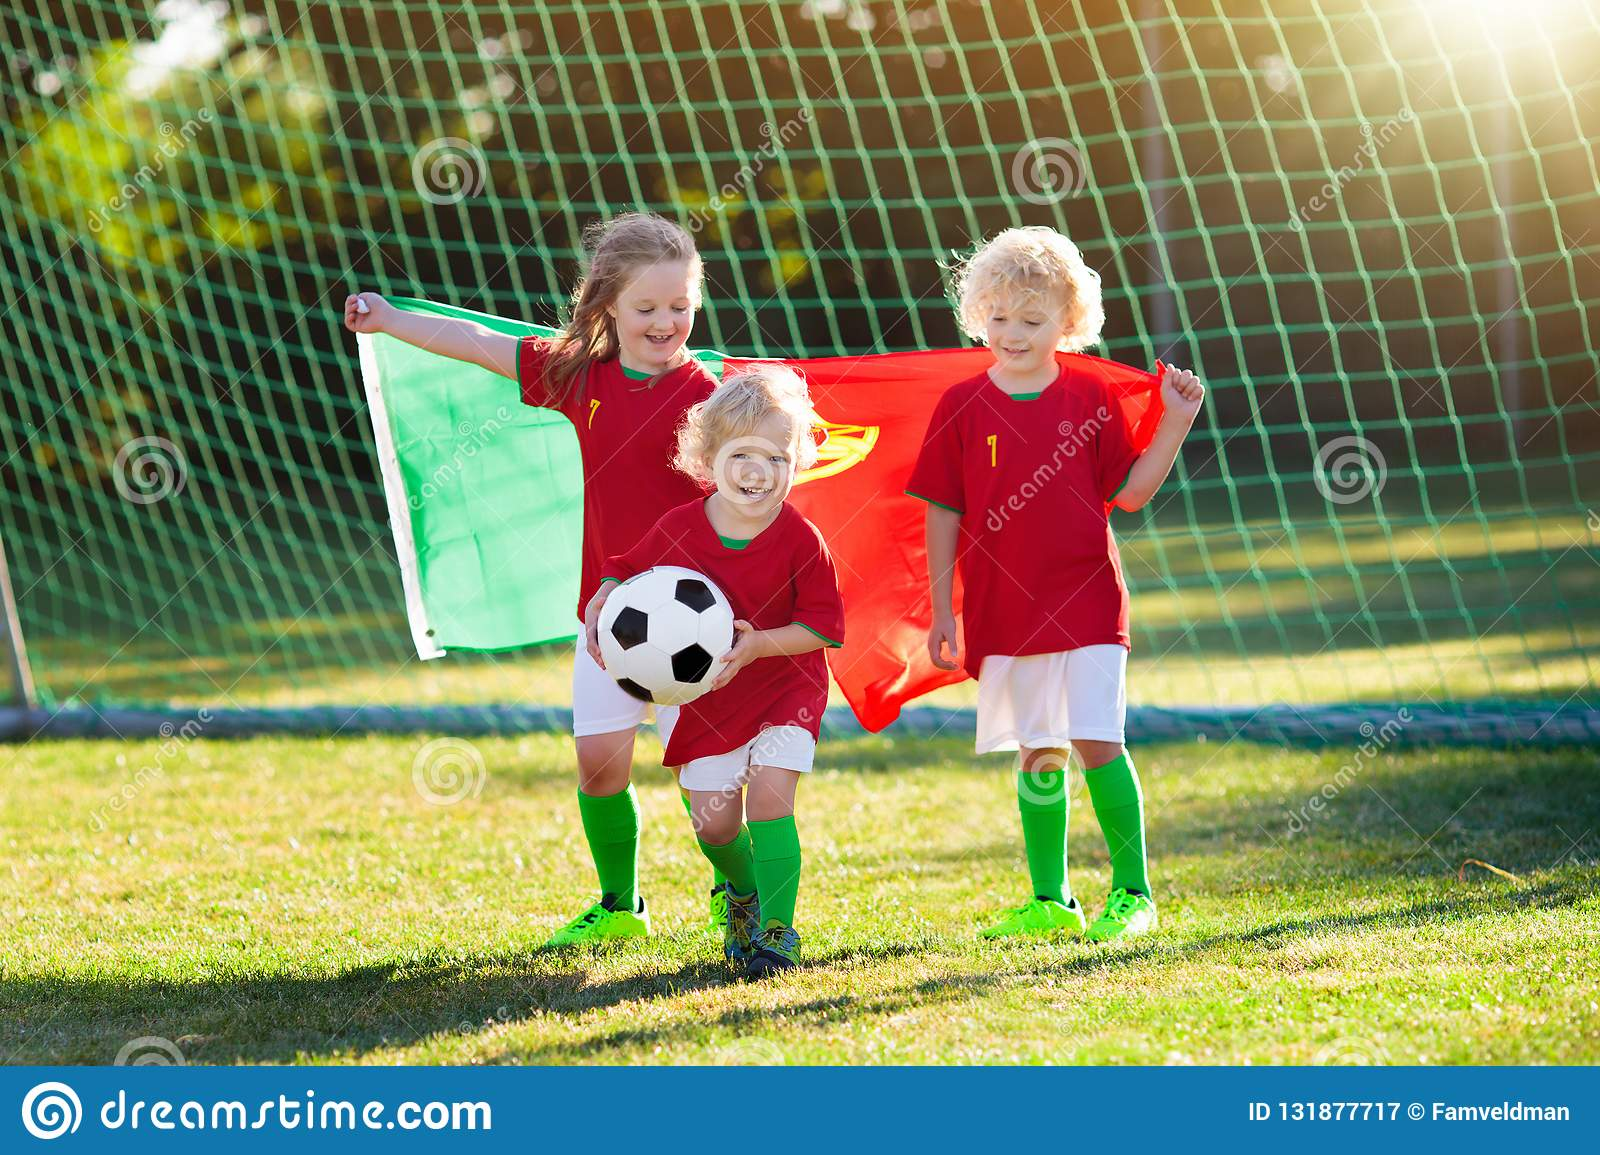 Should Kids Be Allowed To Play Soccer >> Portugal Football Fan Kids Children Play Soccer Stock Image Image